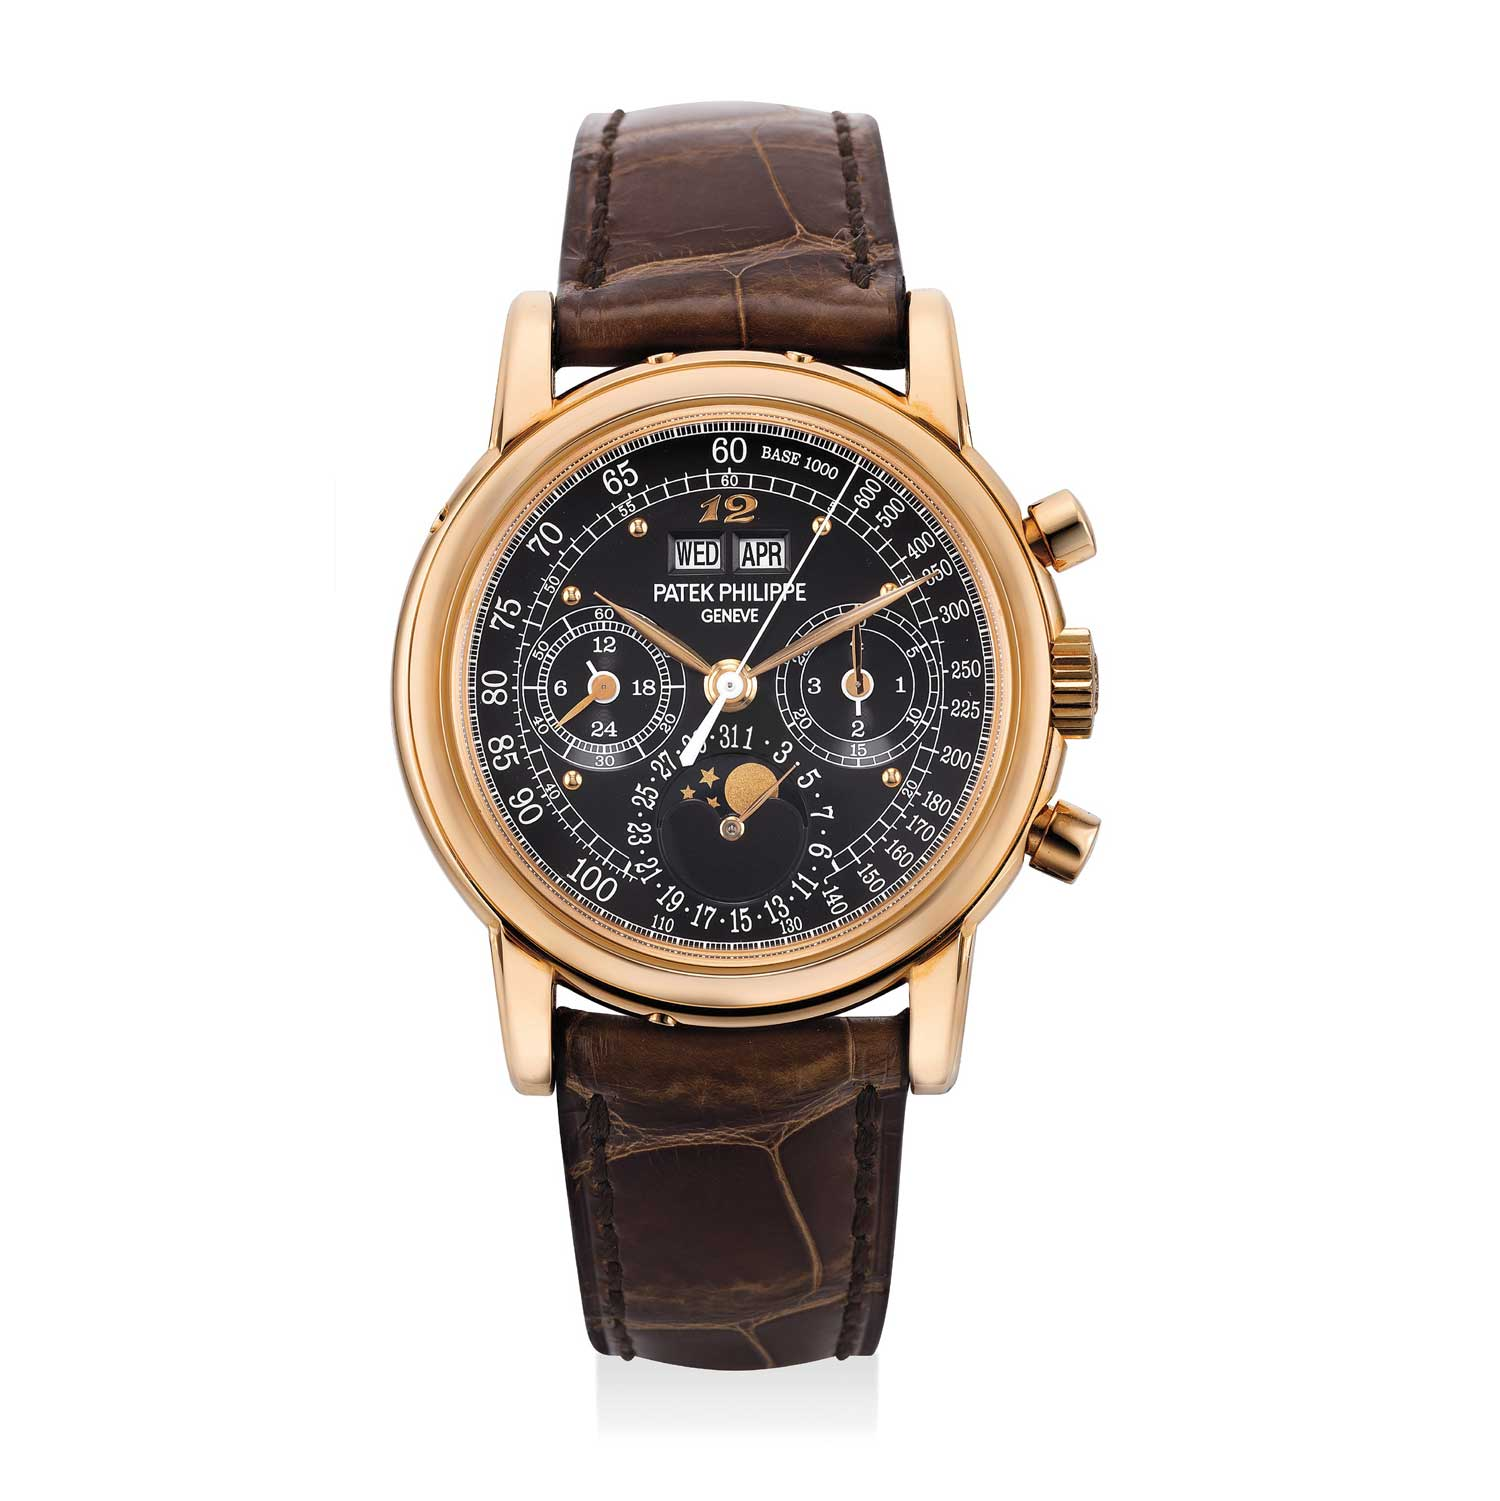 The pink gold Patek Philippe ref. 3970 perpetual calendar chronograph wristwatch with special black tachymeter scale balck dial and applied Breguet numeral at 12 o'clock; only 5 of these were produced by Patek Philippe for their 2015 exhibition in London (Image: phillips.com)